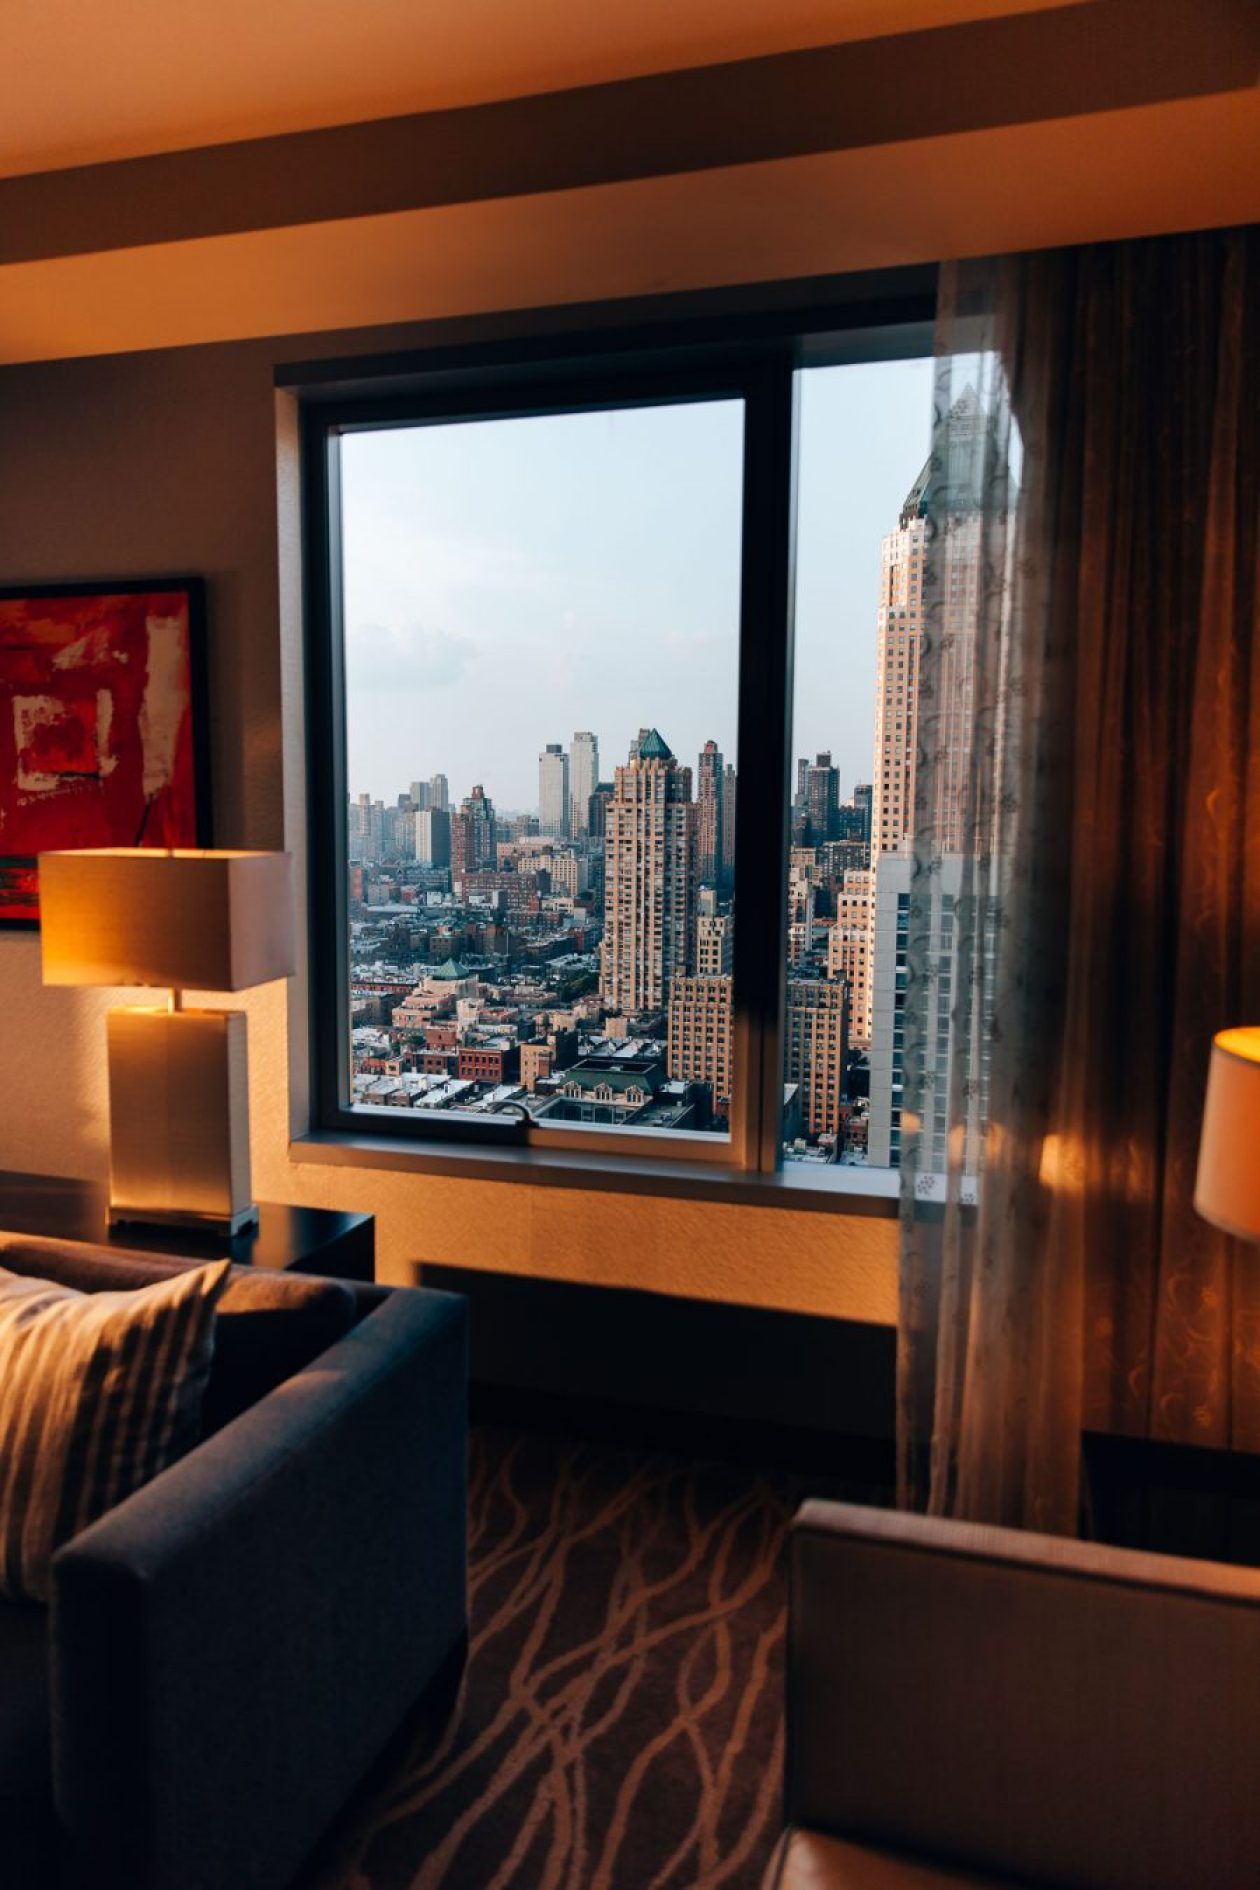 New York blogger Nita Mann from Next With Nita shares her stay at the Intercontinental Times Square and reviews the hotel's amenities, restaurants, and overall vibe.